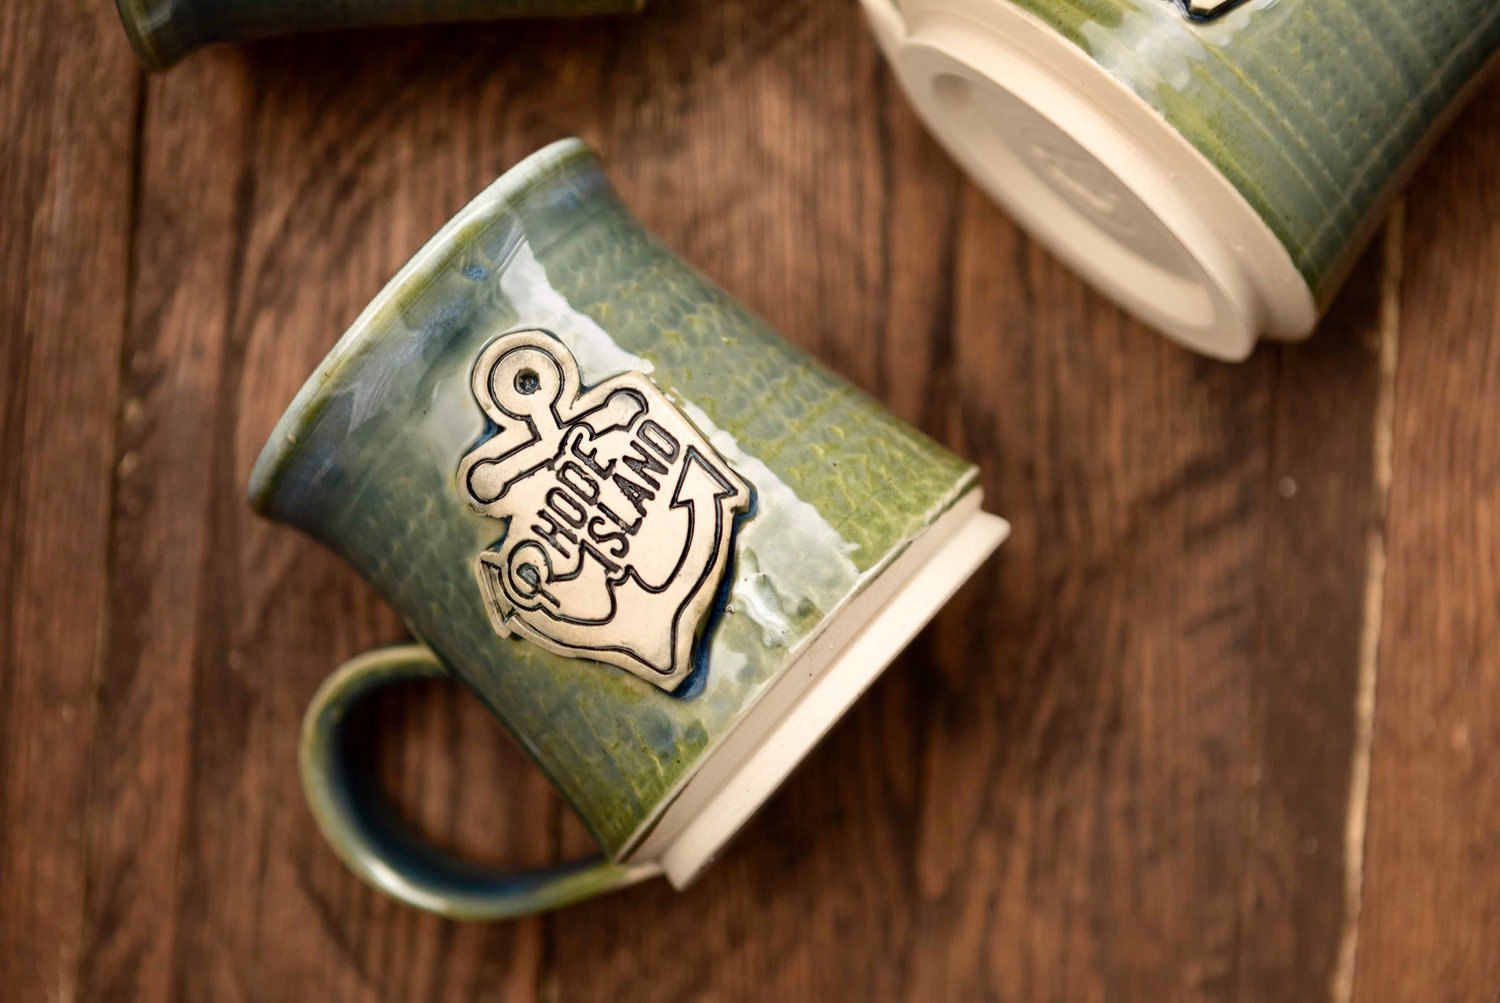 Handcrafted mugs show Rhody love